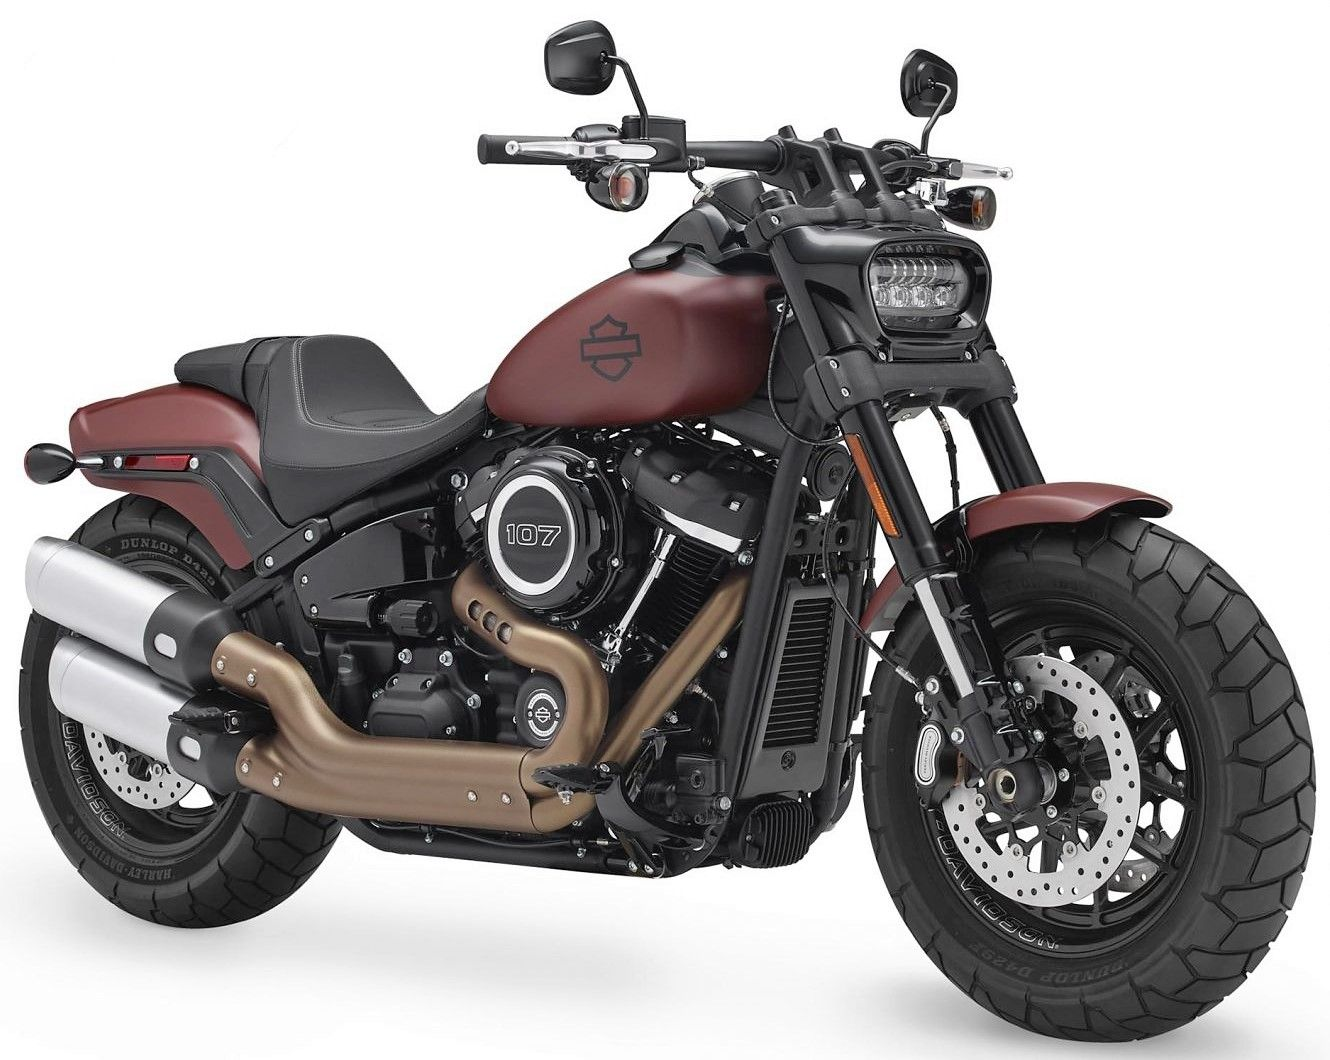 Latest Harley Davidson Motorcycles Price List In India Updated Harley Davidson Motorcycles Motorcycle Harley Harley Davidson Bikes